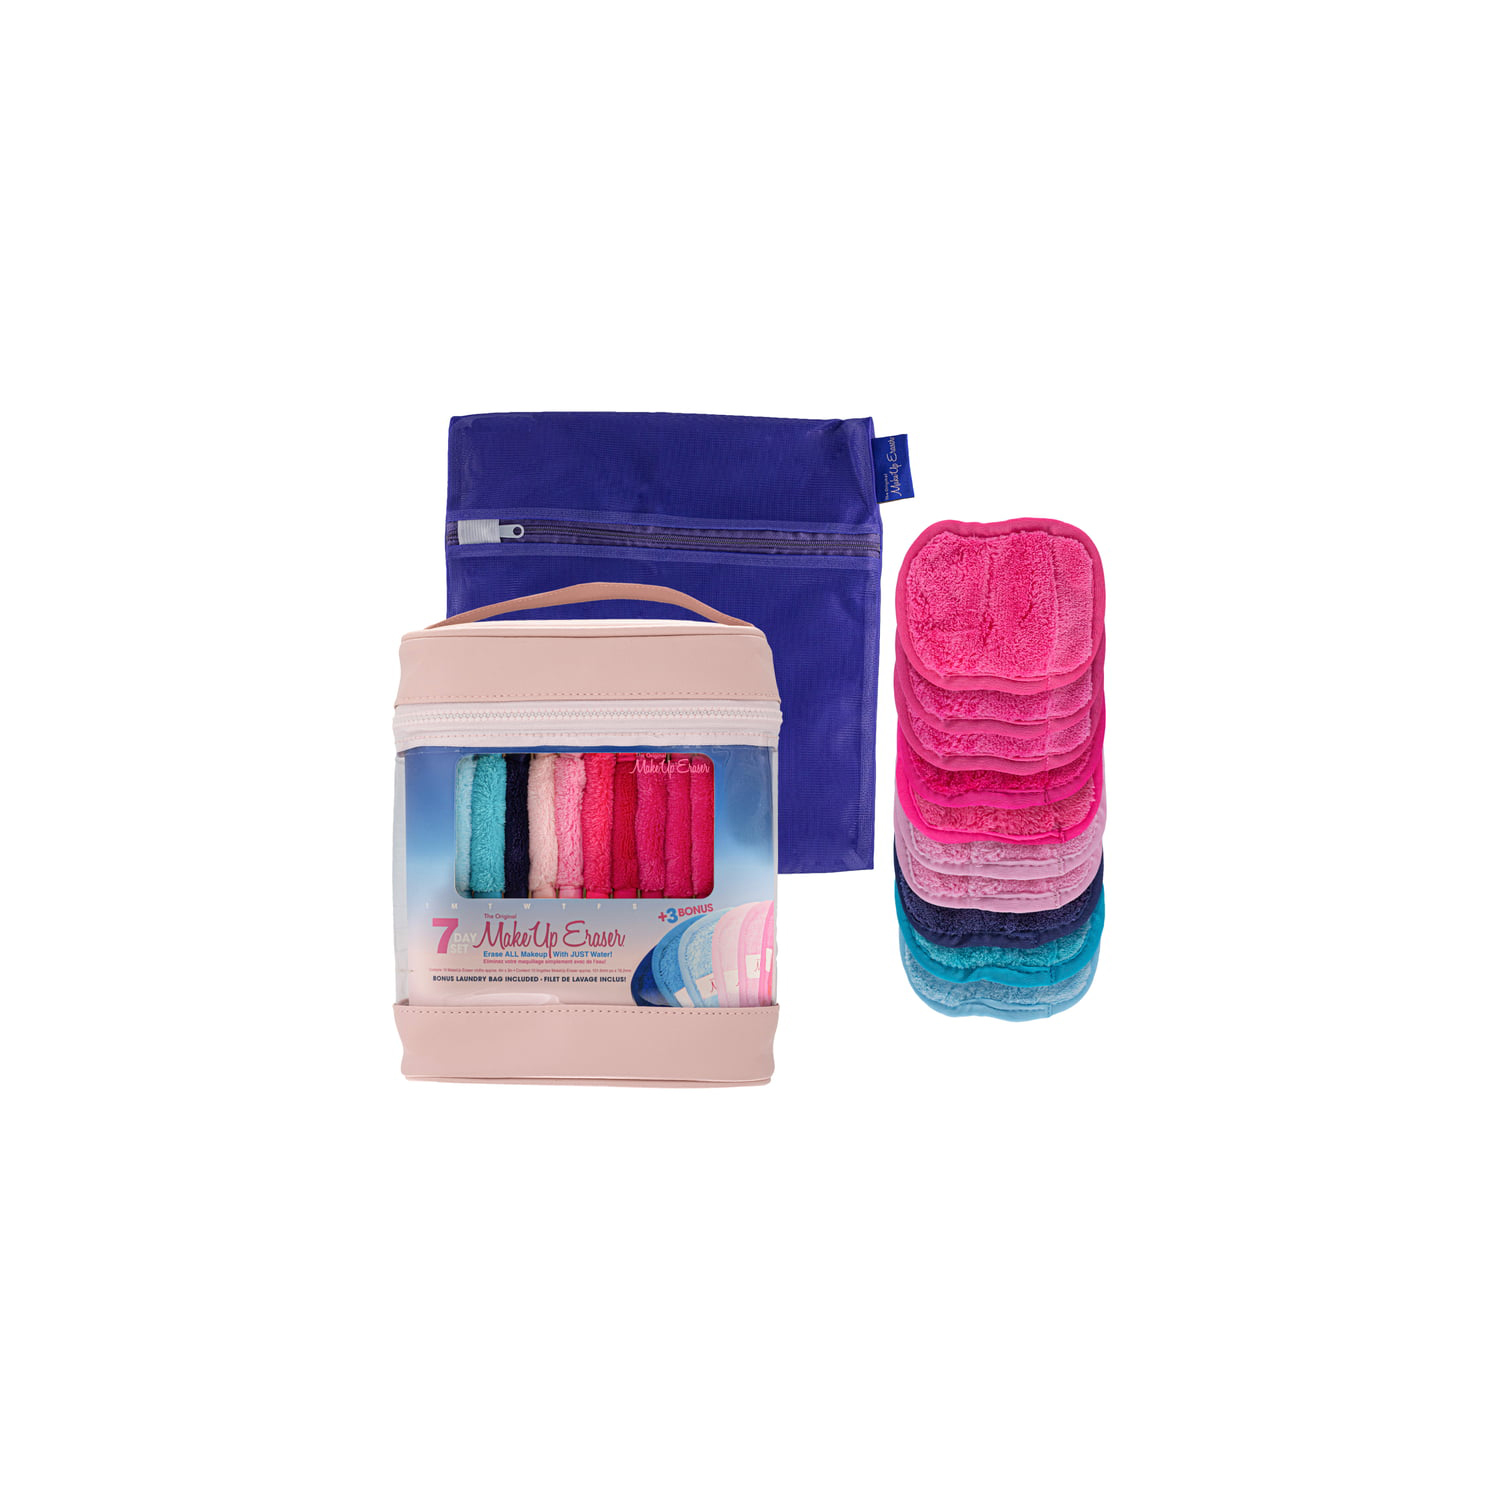 Makeup Eraser 10-Day Cloth Set